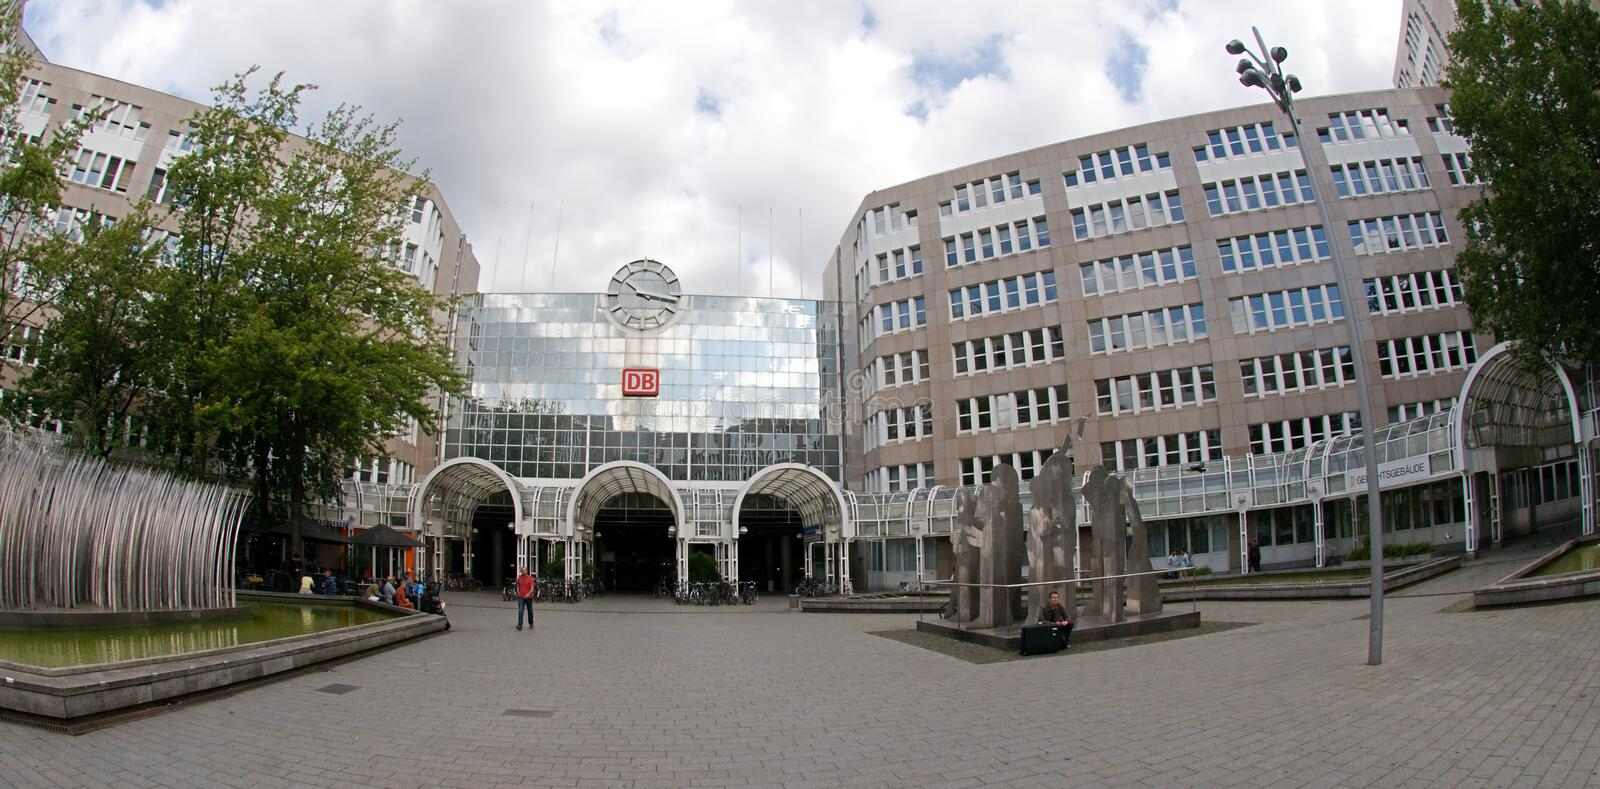 Central station Dusseldorf royalty free stock images